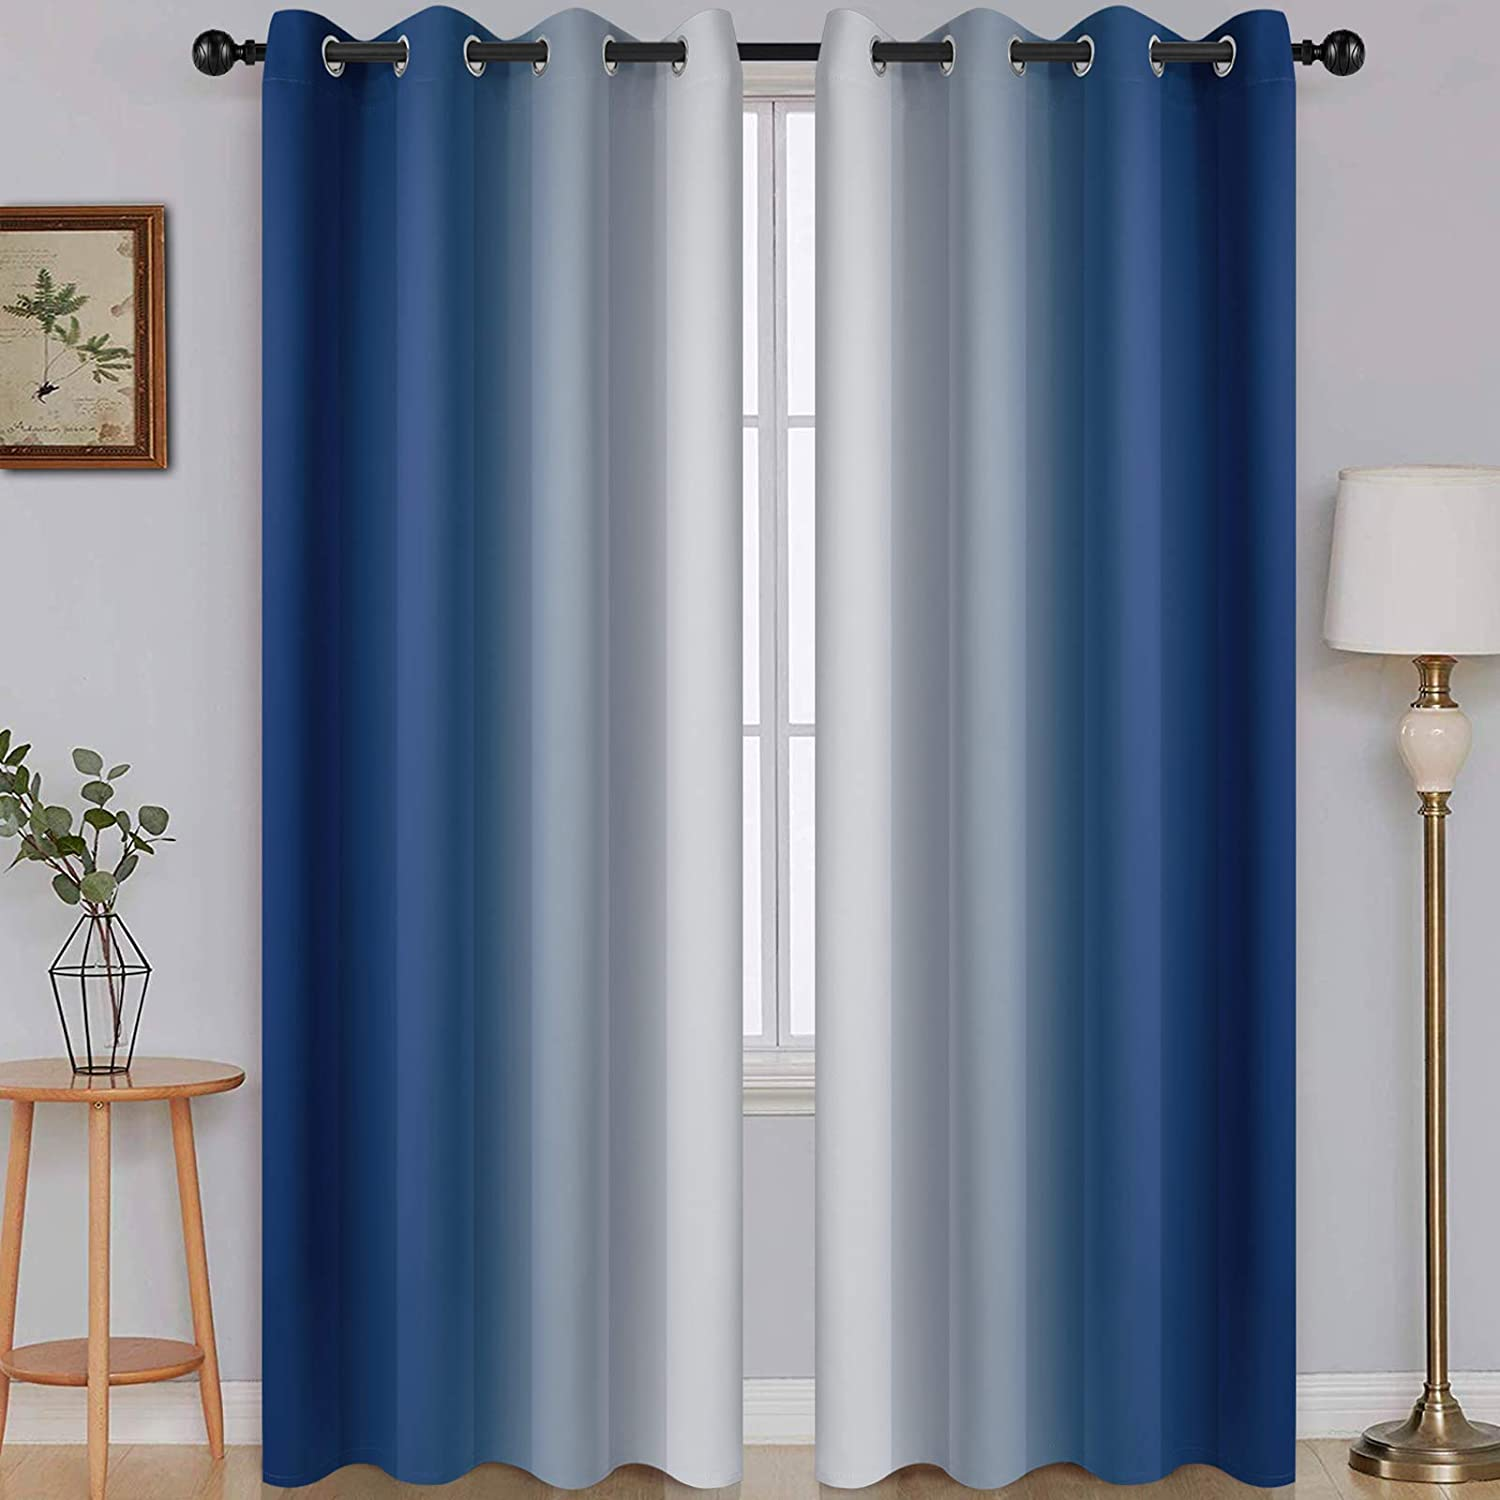 SimpleHome Ombre Room Darkening Low price for Curtains Los Angeles Mall Living Light